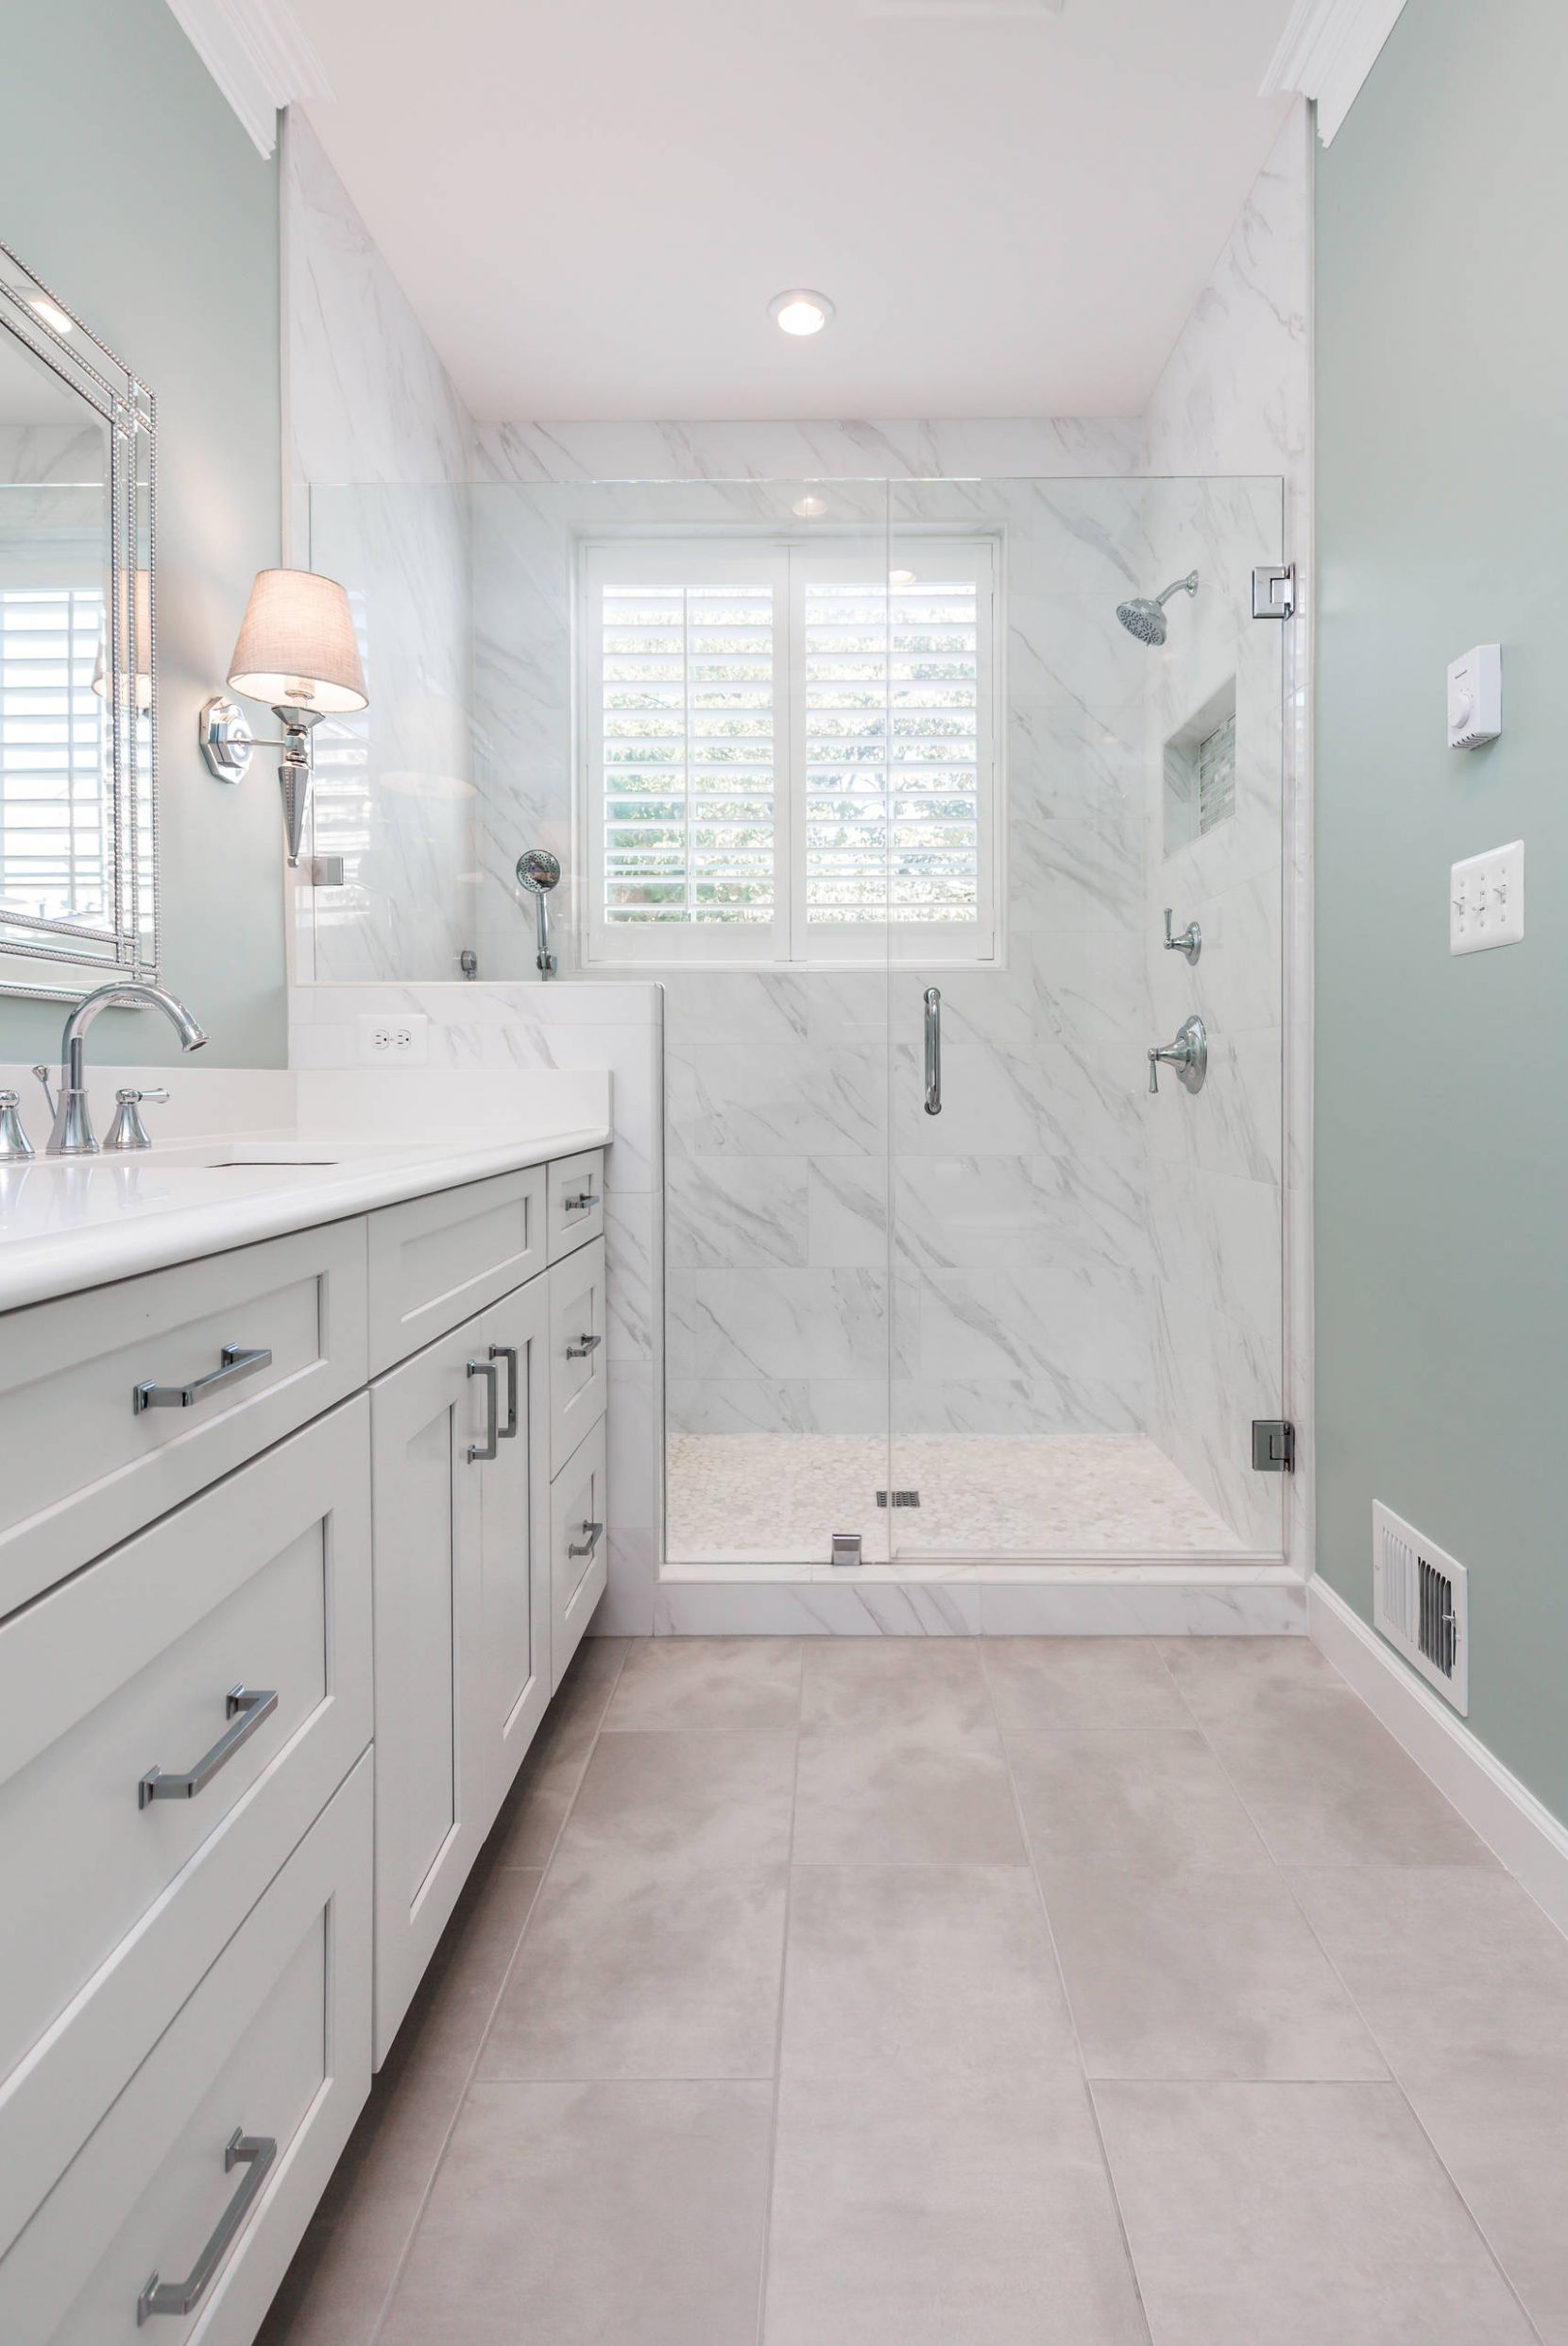 11 Beautiful Small Bathroom Pictures & Ideas | Houzz